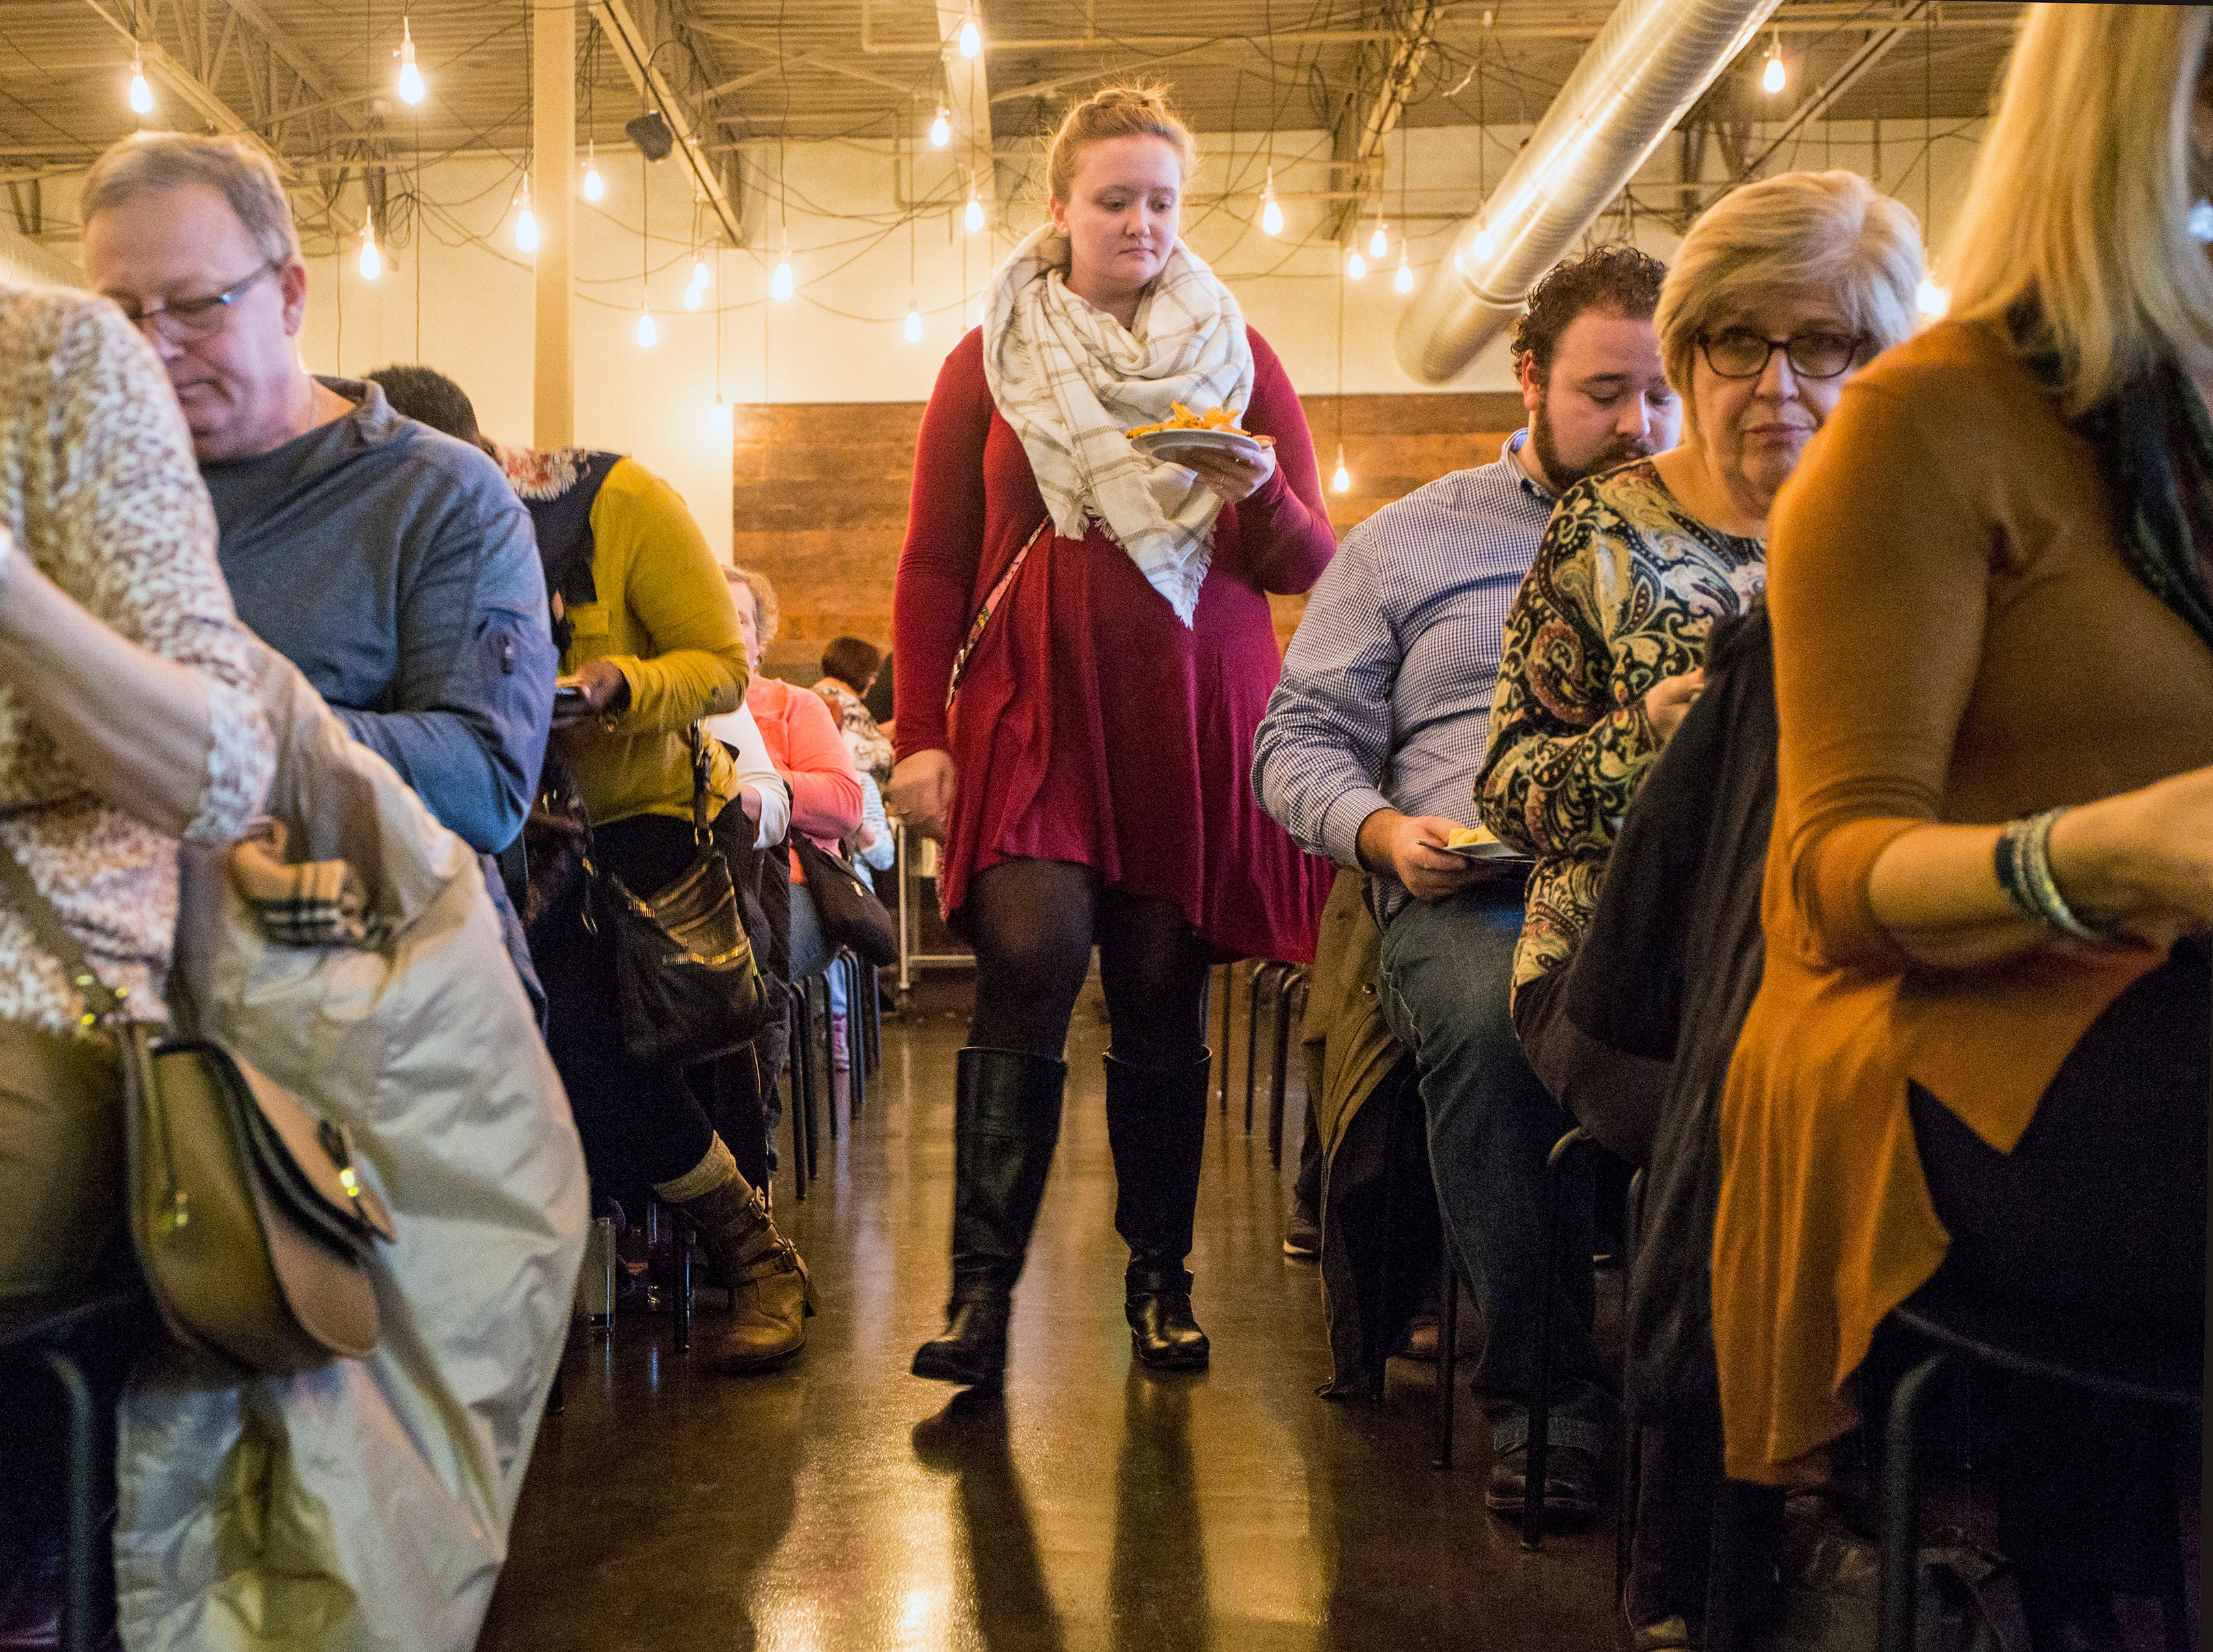 Laura Badarak, 27 of Allen Park makes her way to her seat for the Whisked event cooking demonstrations at the Great Lakes Culinary Center in Southfield, Mich.,Sunday, Nov. 18, 2018.